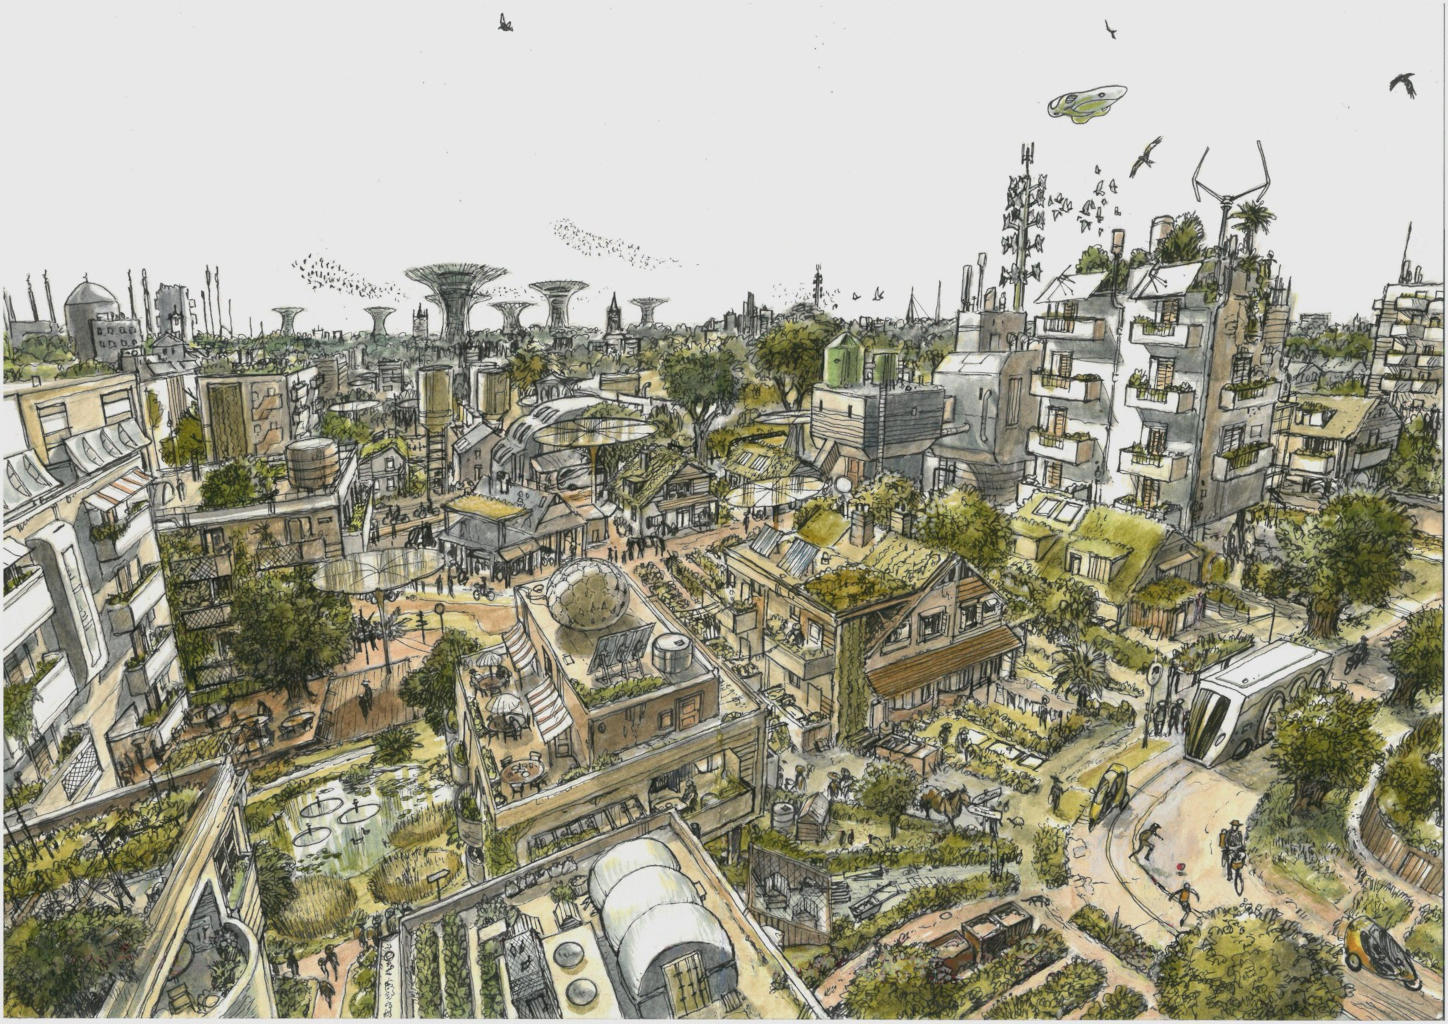 Sustainable Cities by James McKay